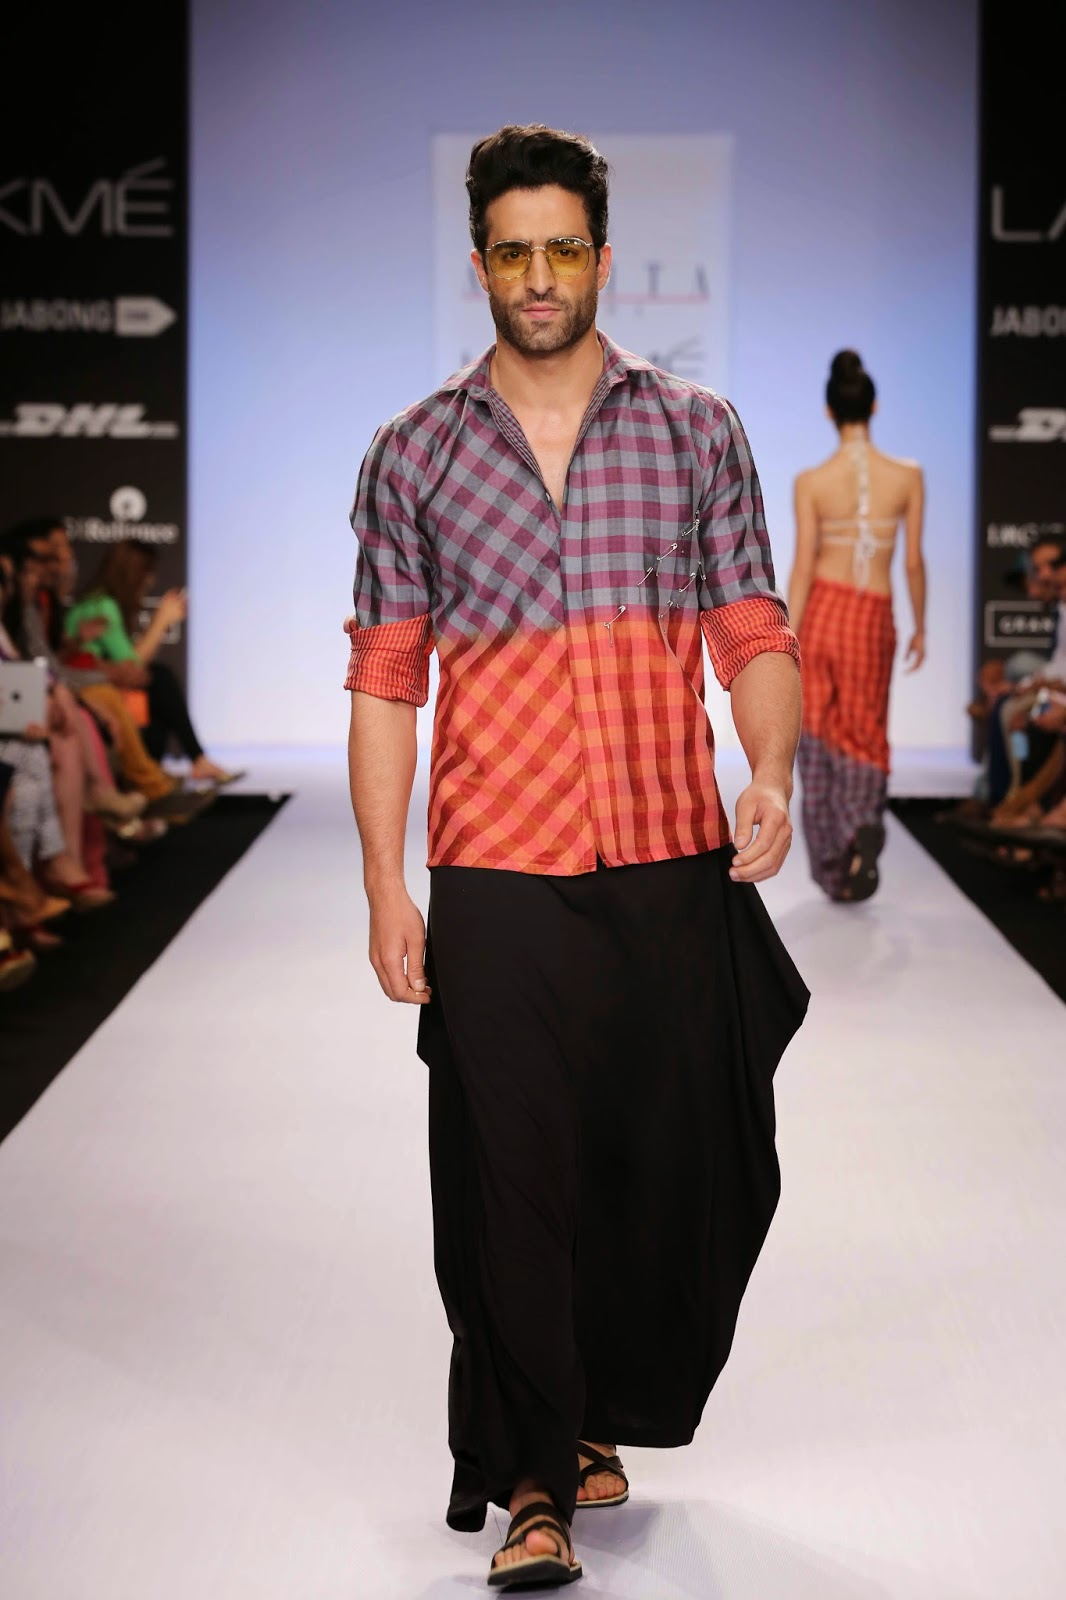 Presenting four men's wear entries Asmita ensured that they followed the resort wear theme. Jersey samurai pants were worn with Chanderi dip dyed shirts and voile short sleeved kurtas were teamed with black denims.